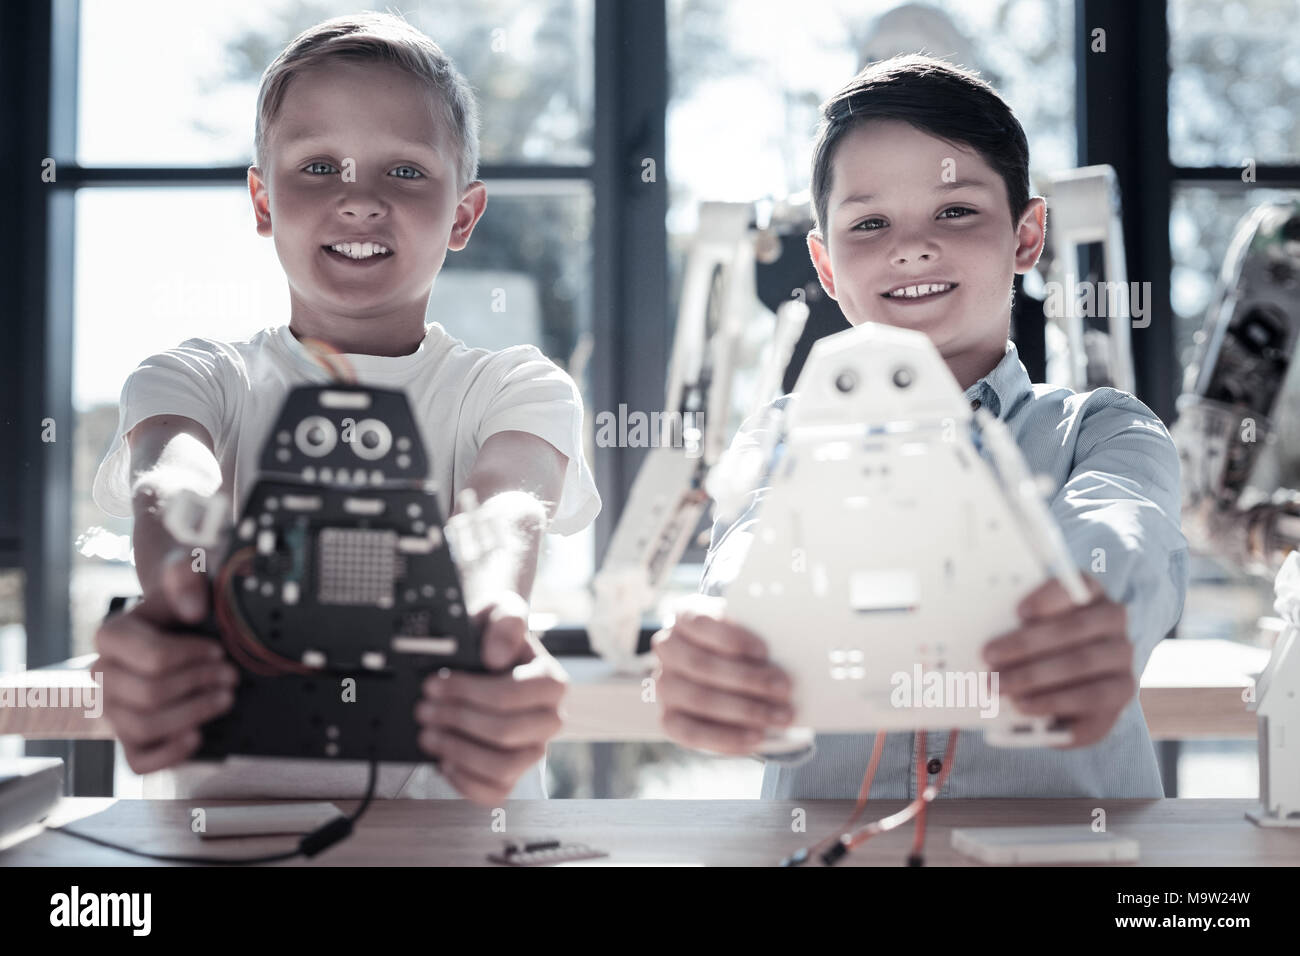 Satisfied preteen boys showing their robotic machines - Stock Image